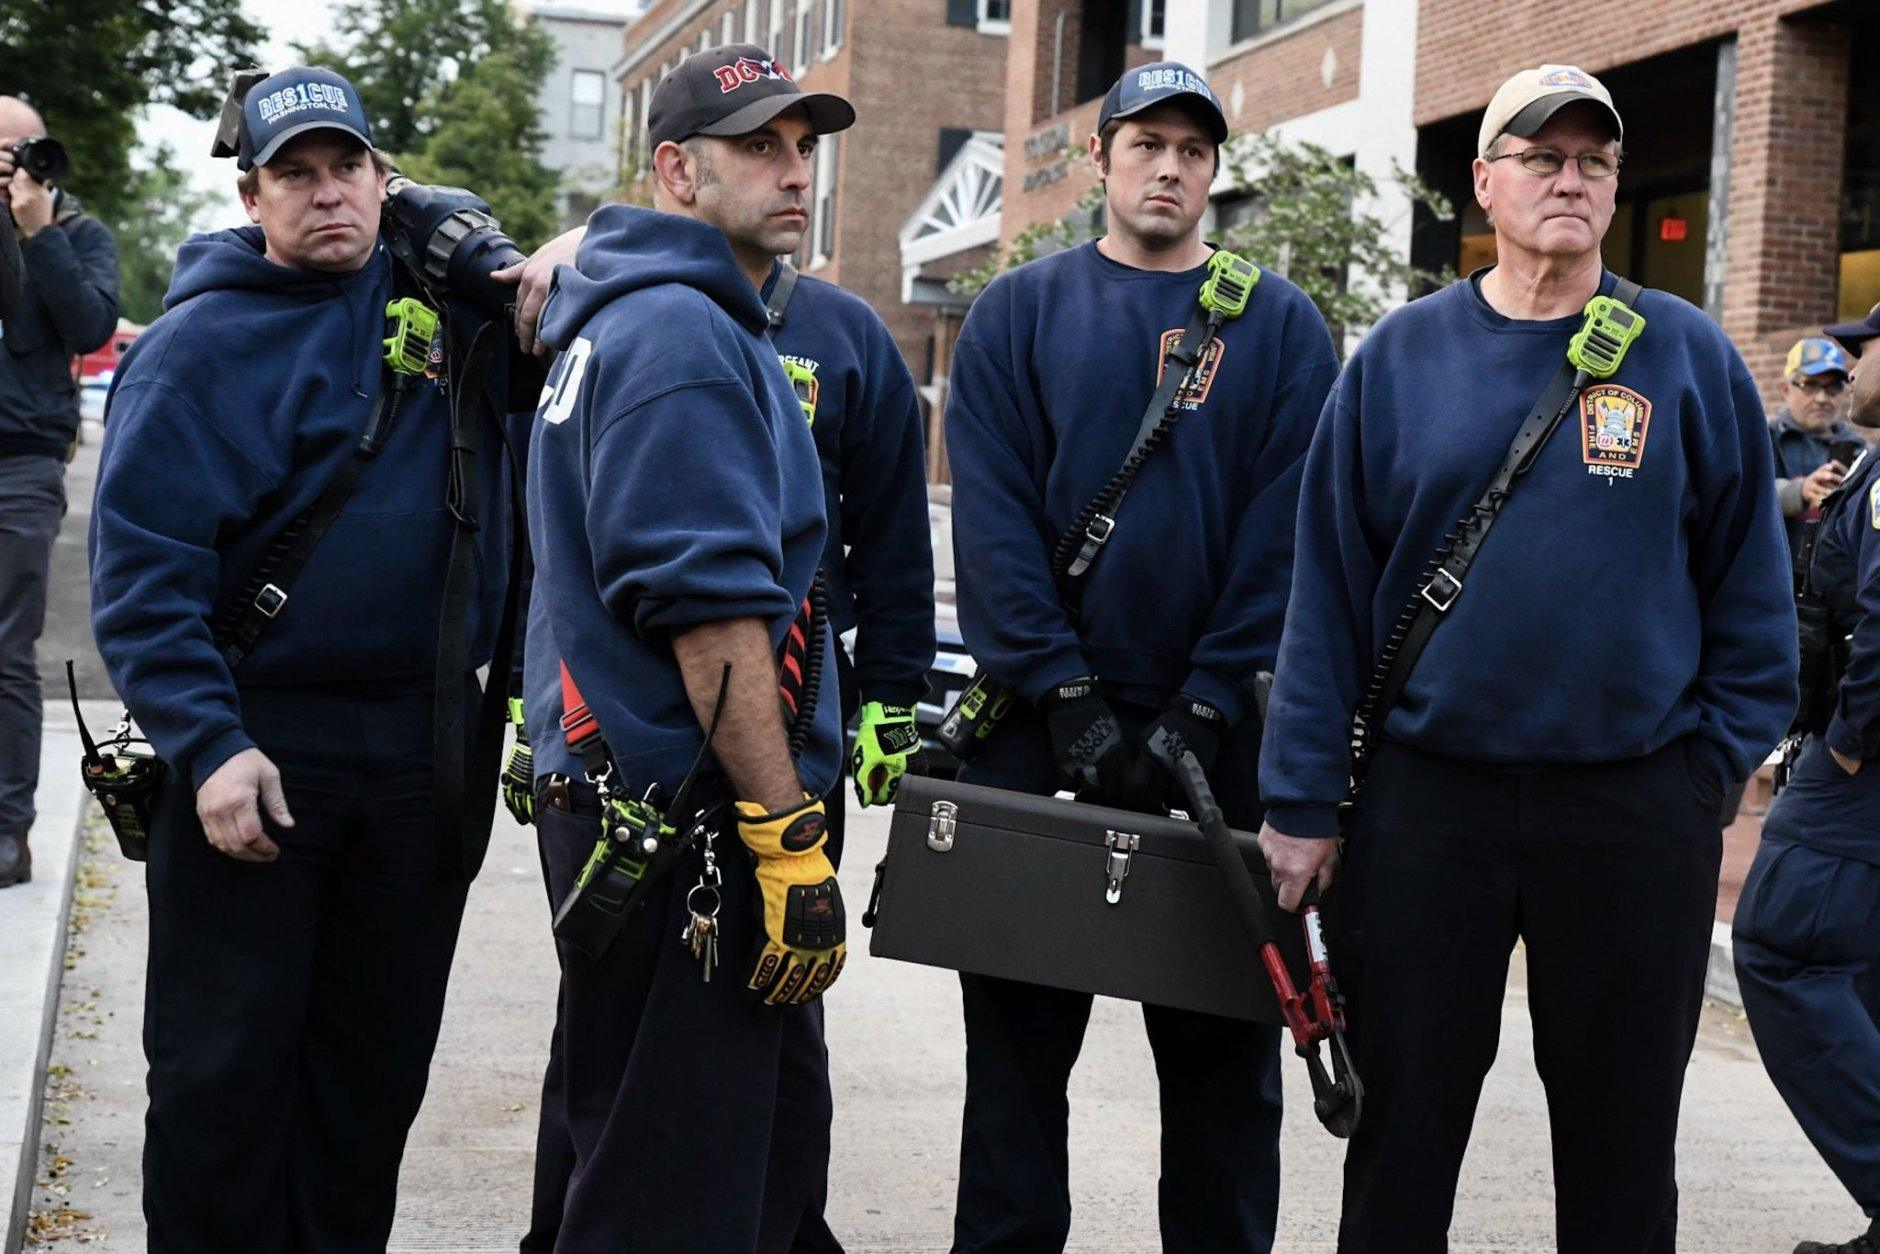 The D.C. fire department arrived with bolt cutters to remove chains and a bike lock which activists had sealed the Venezuelan Embassy's front entrance with. (WTOP/Alejandro Alvarez)